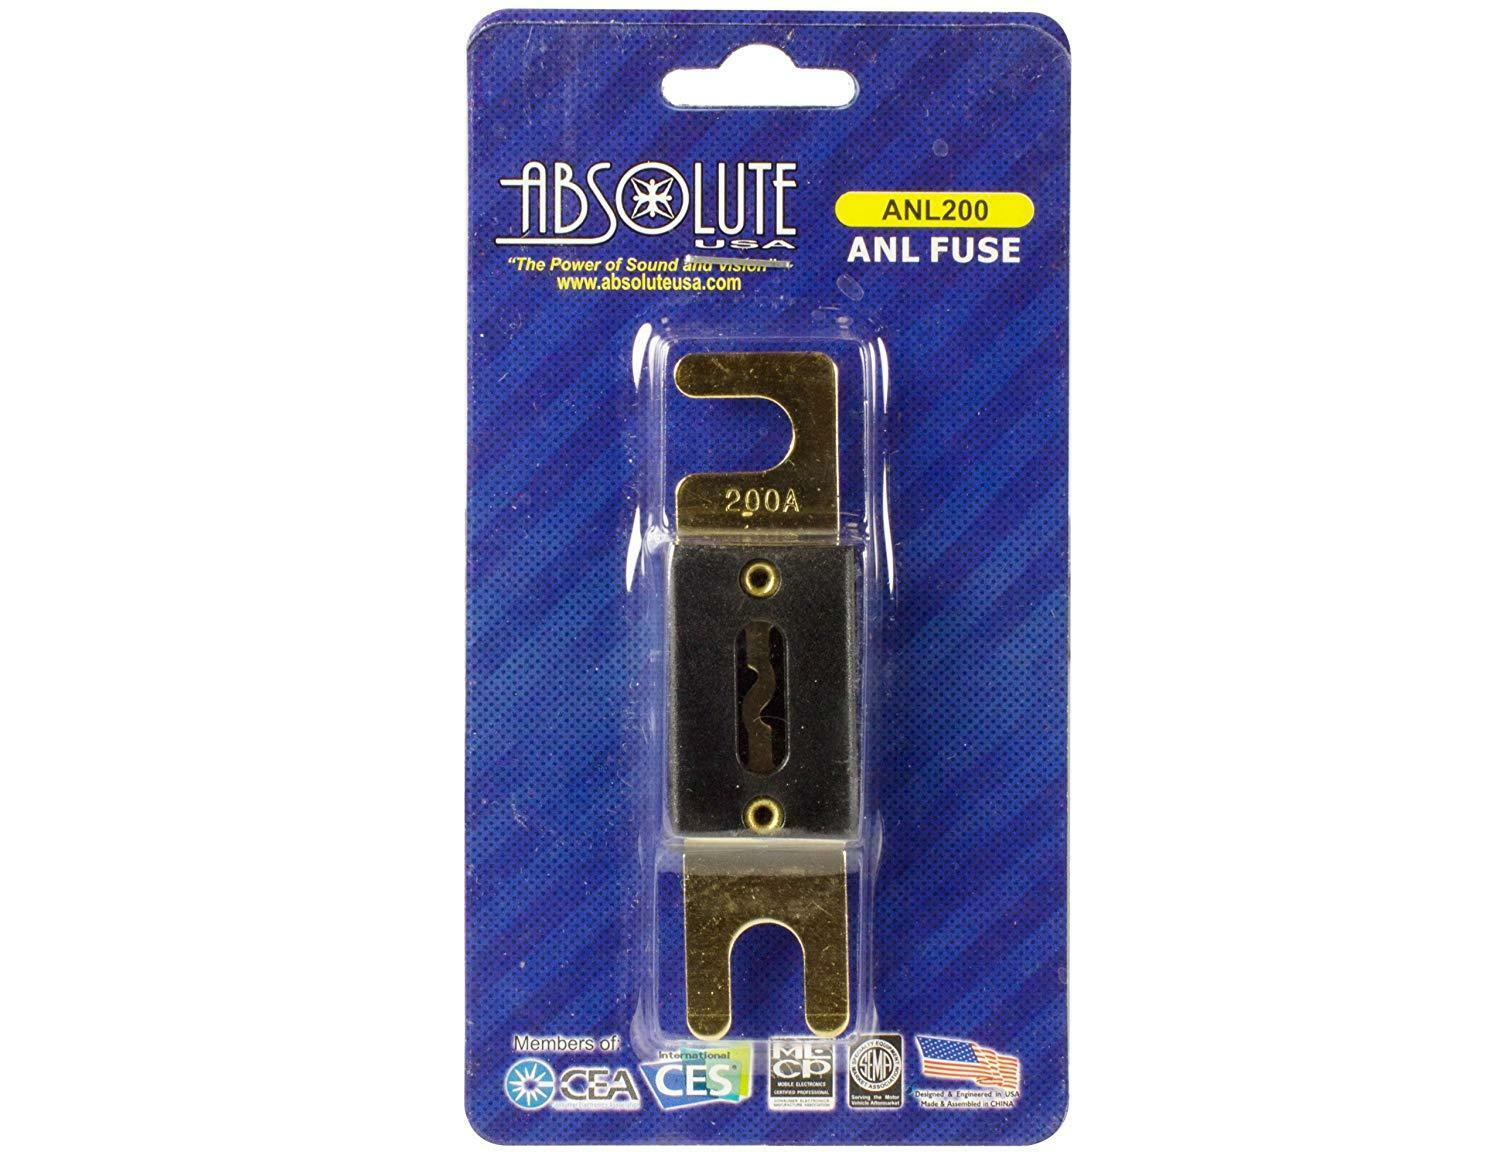 Absolute ANL200 200-Amp Gold ANL Fuse- Fuse Rating: 200A- 4 x 4 x 2 inches